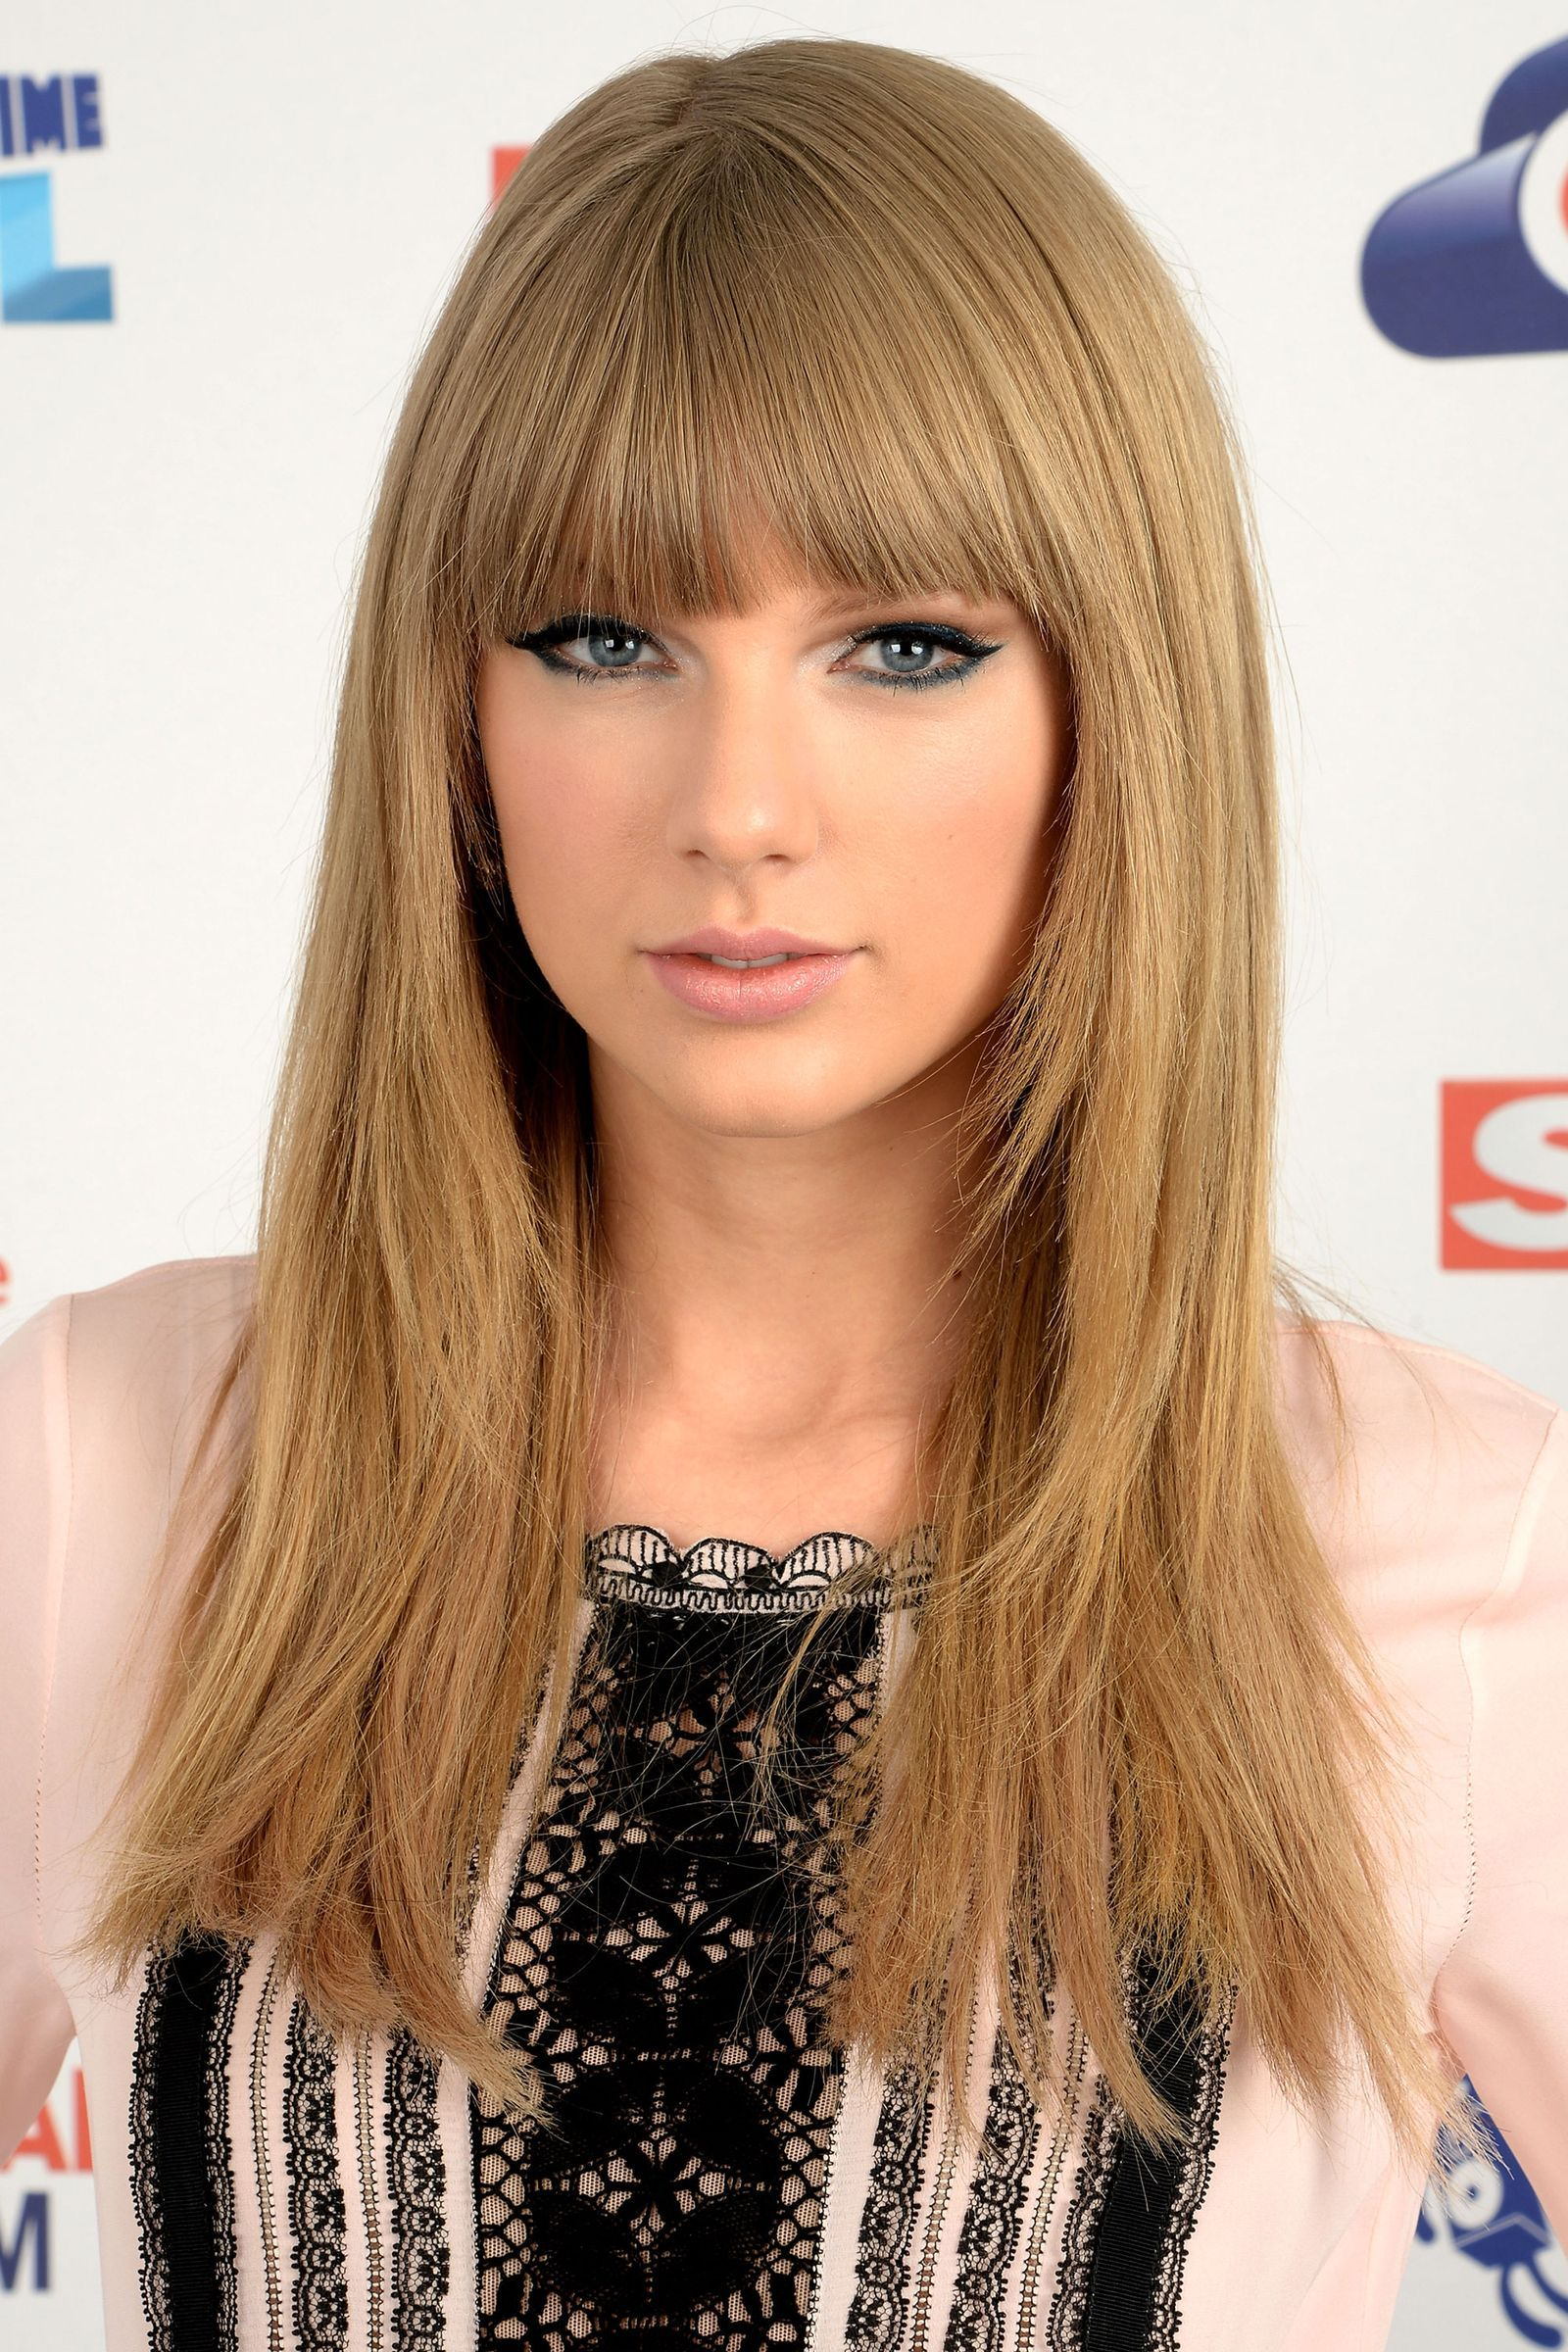 Taylor Swift S Amazing Beauty Transformation Through The Years Long Hair Styles Full Bangs Hairstyle Hair Styles